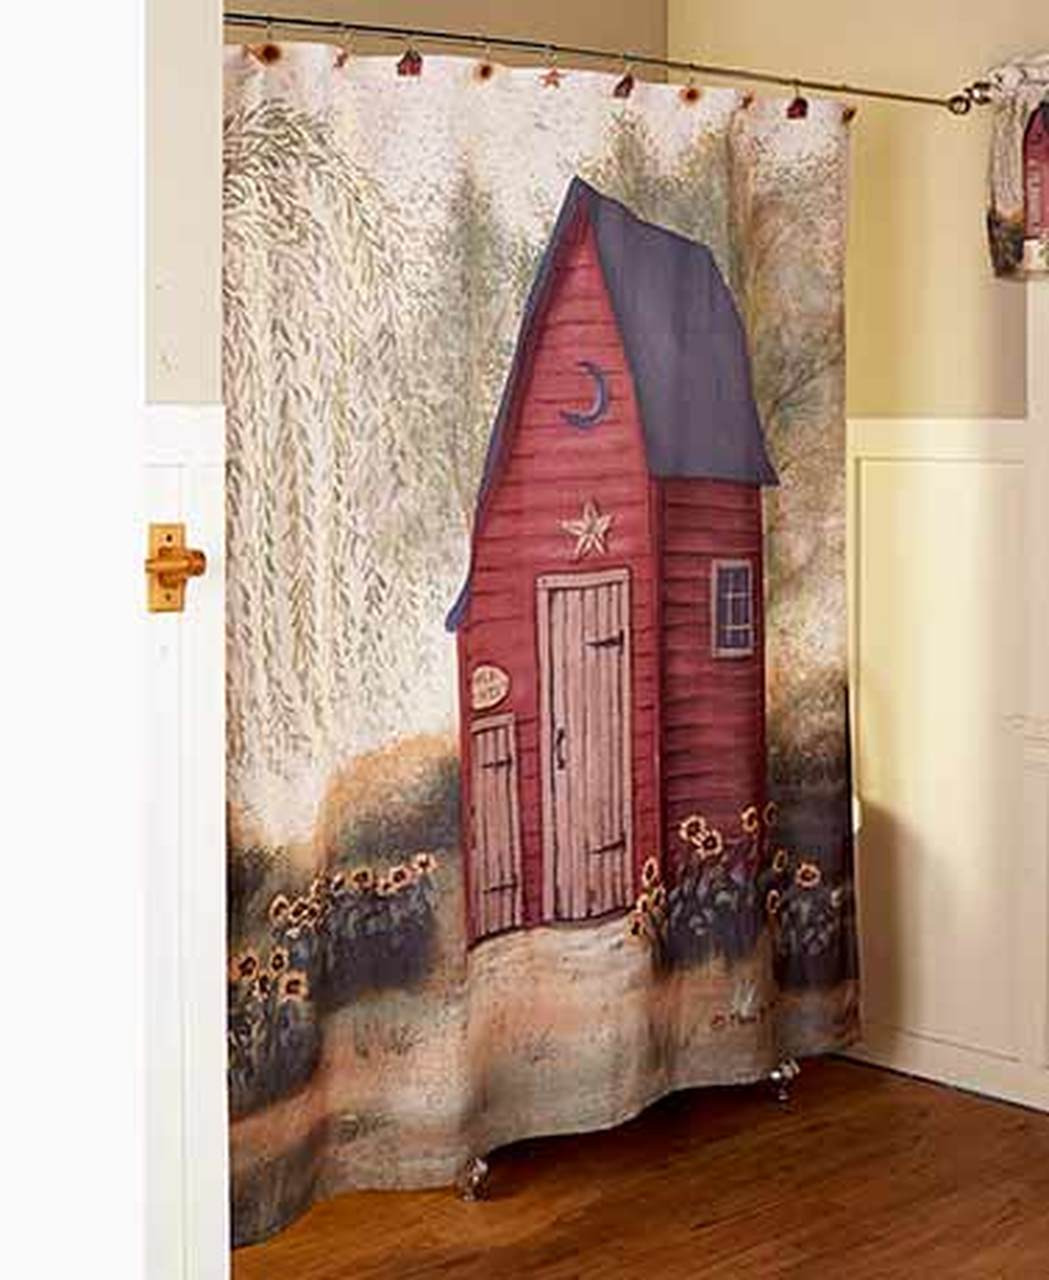 Outhouses Bathroom Decor Lovely Outhouse Bathroom Collection Primitive Home Rustic Artwork Pam Britton Fabric